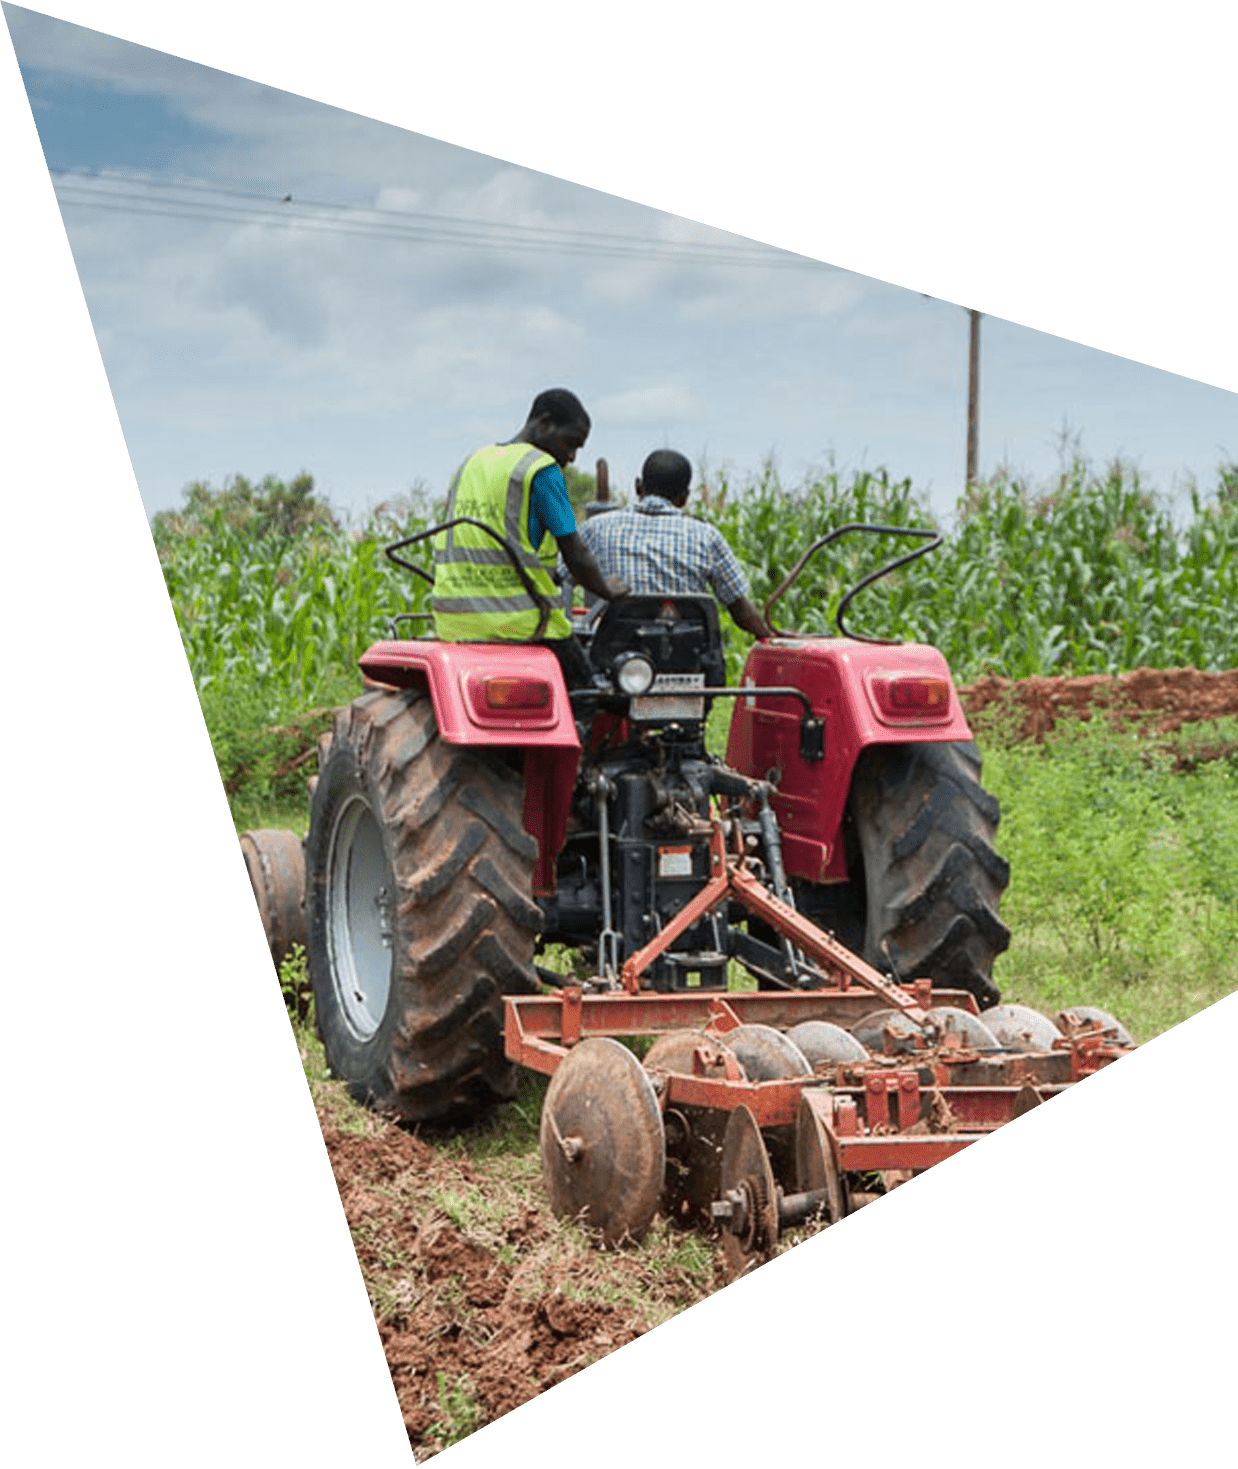 https://pioneercredit.co.ke/wp-content/uploads/2020/02/agribusiness-financing-kenya.png